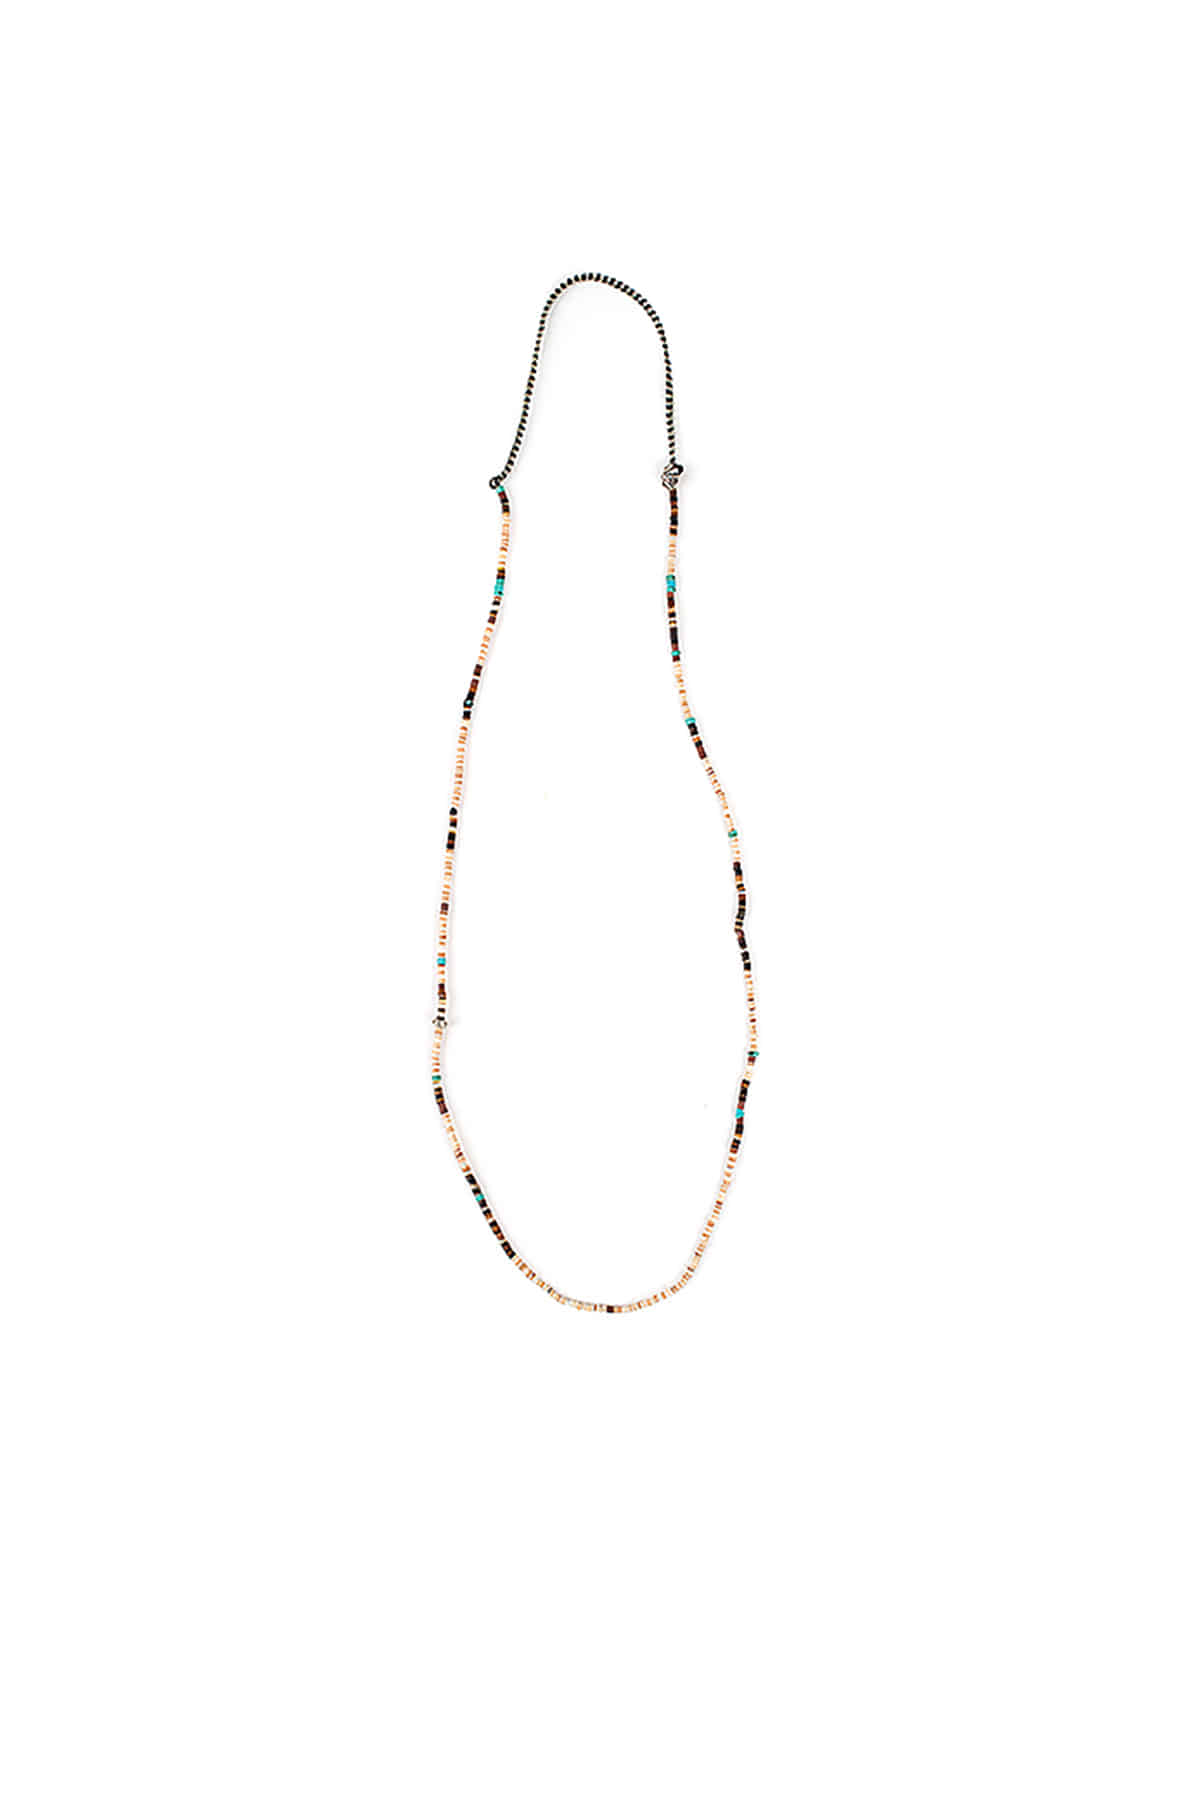 North Works : Seed Beads Necklace (Brown)